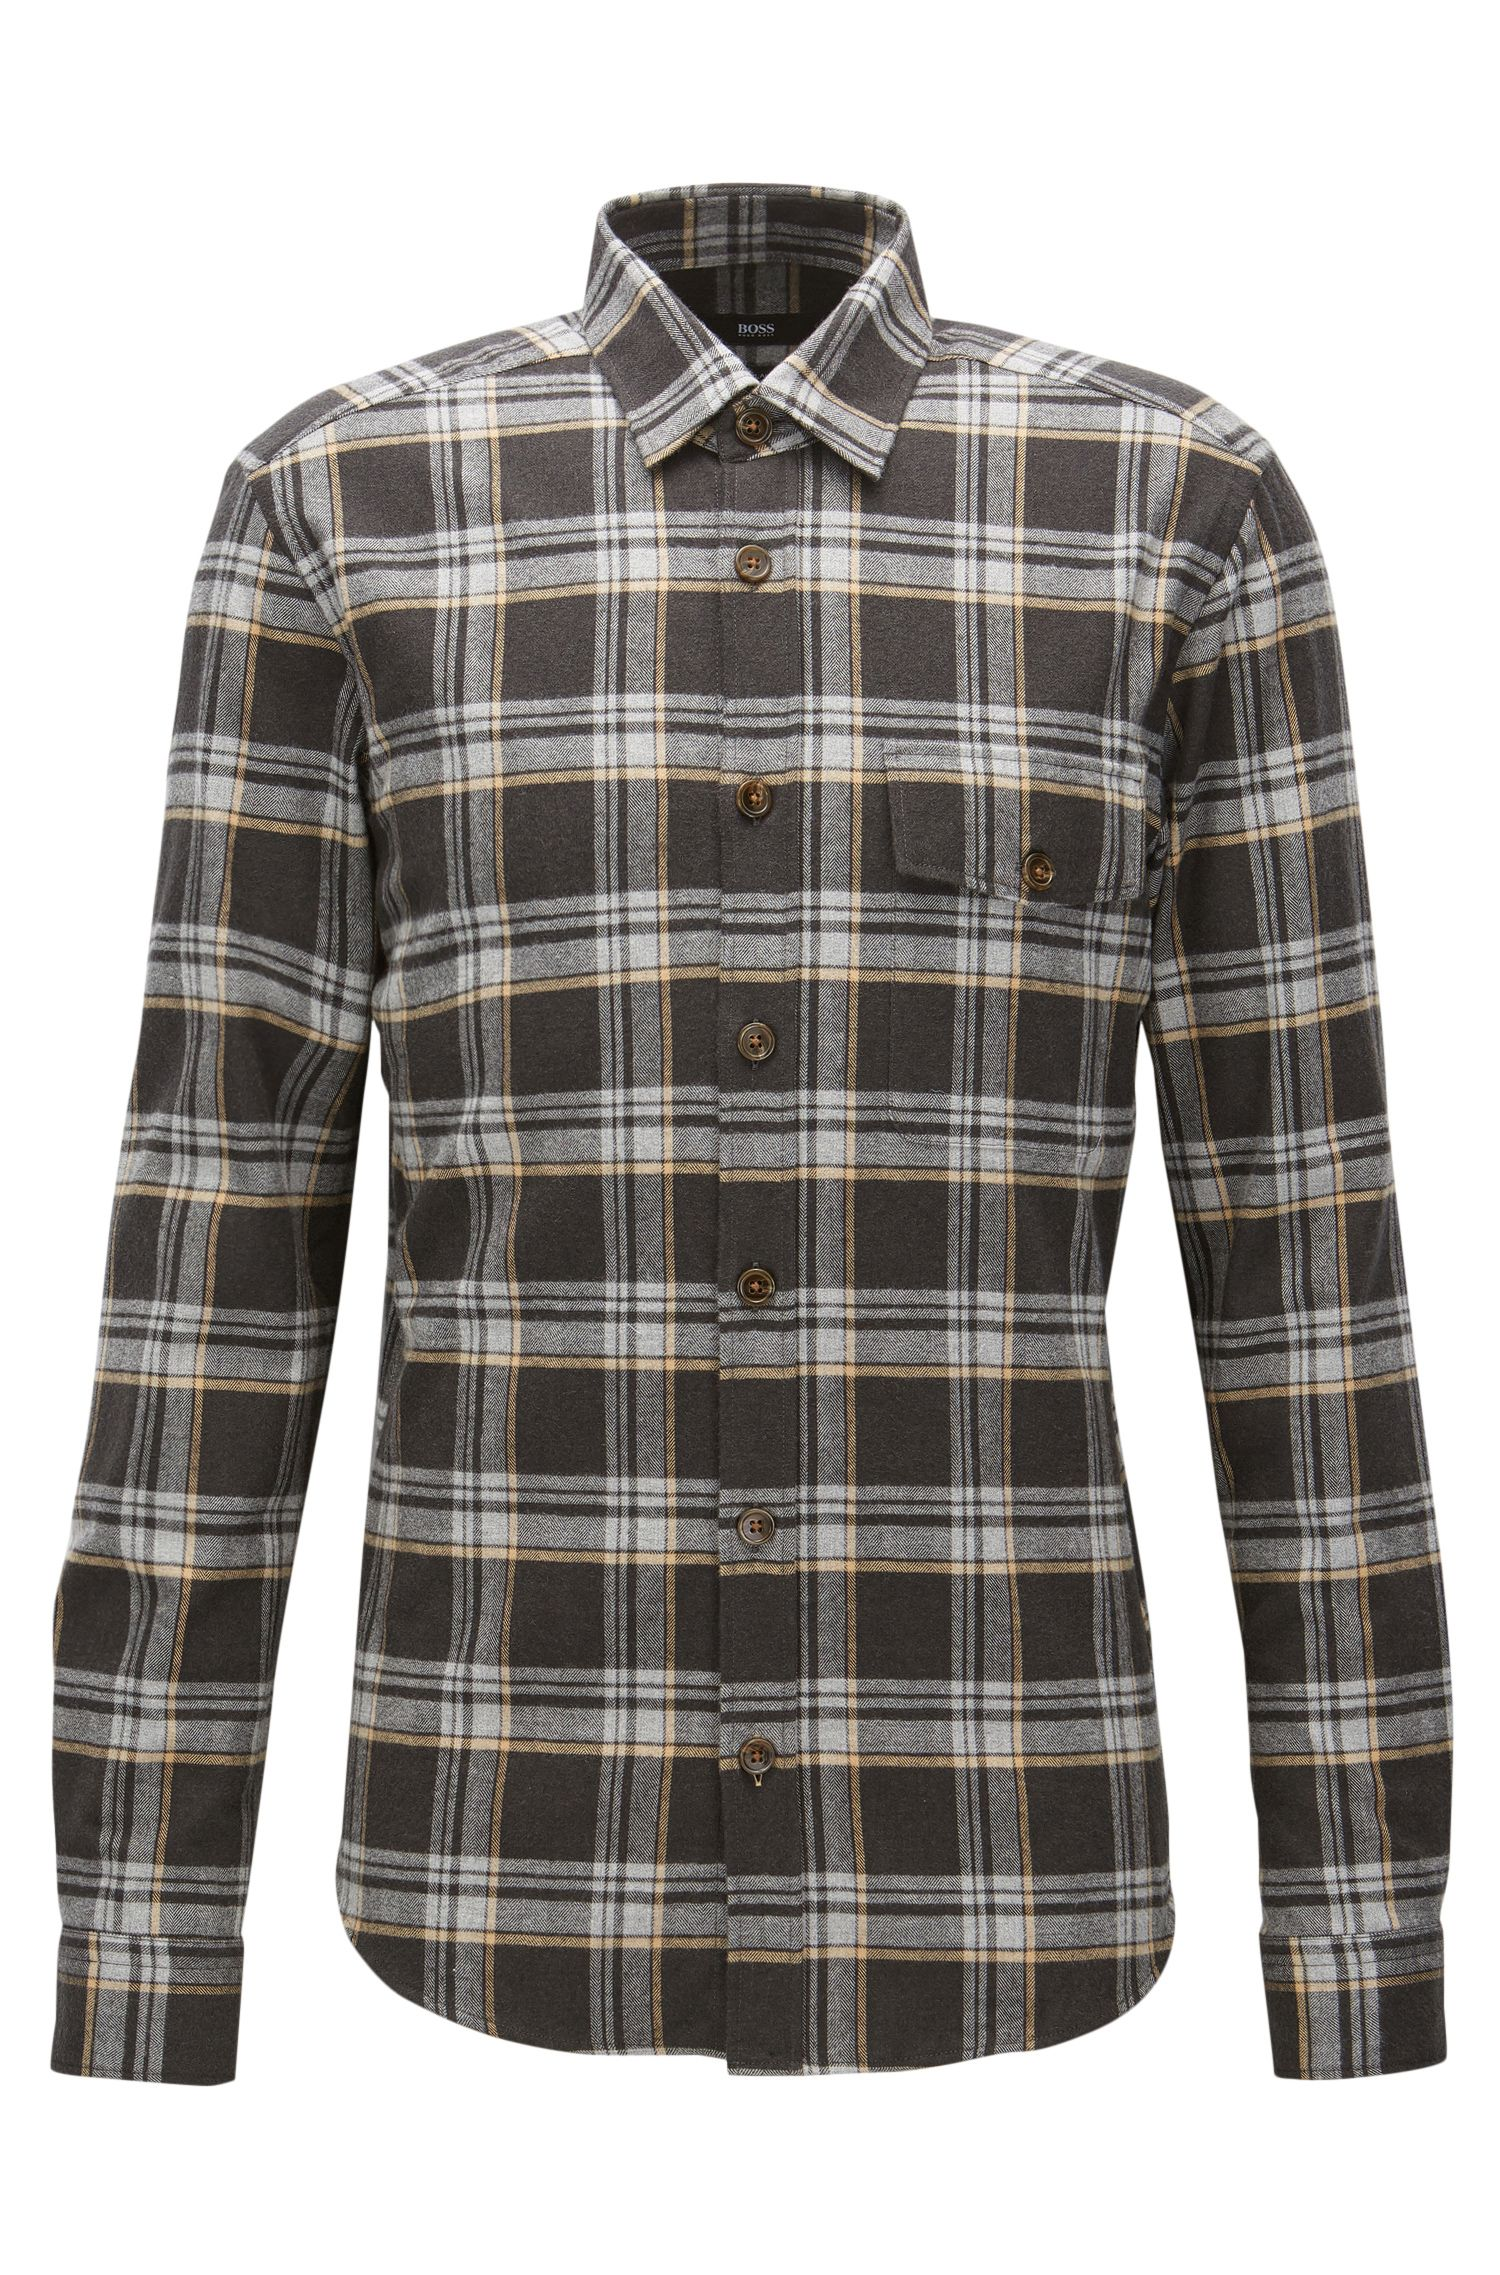 'Lalo' | Regular Fit, Plaid Cotton Button Down Shirt